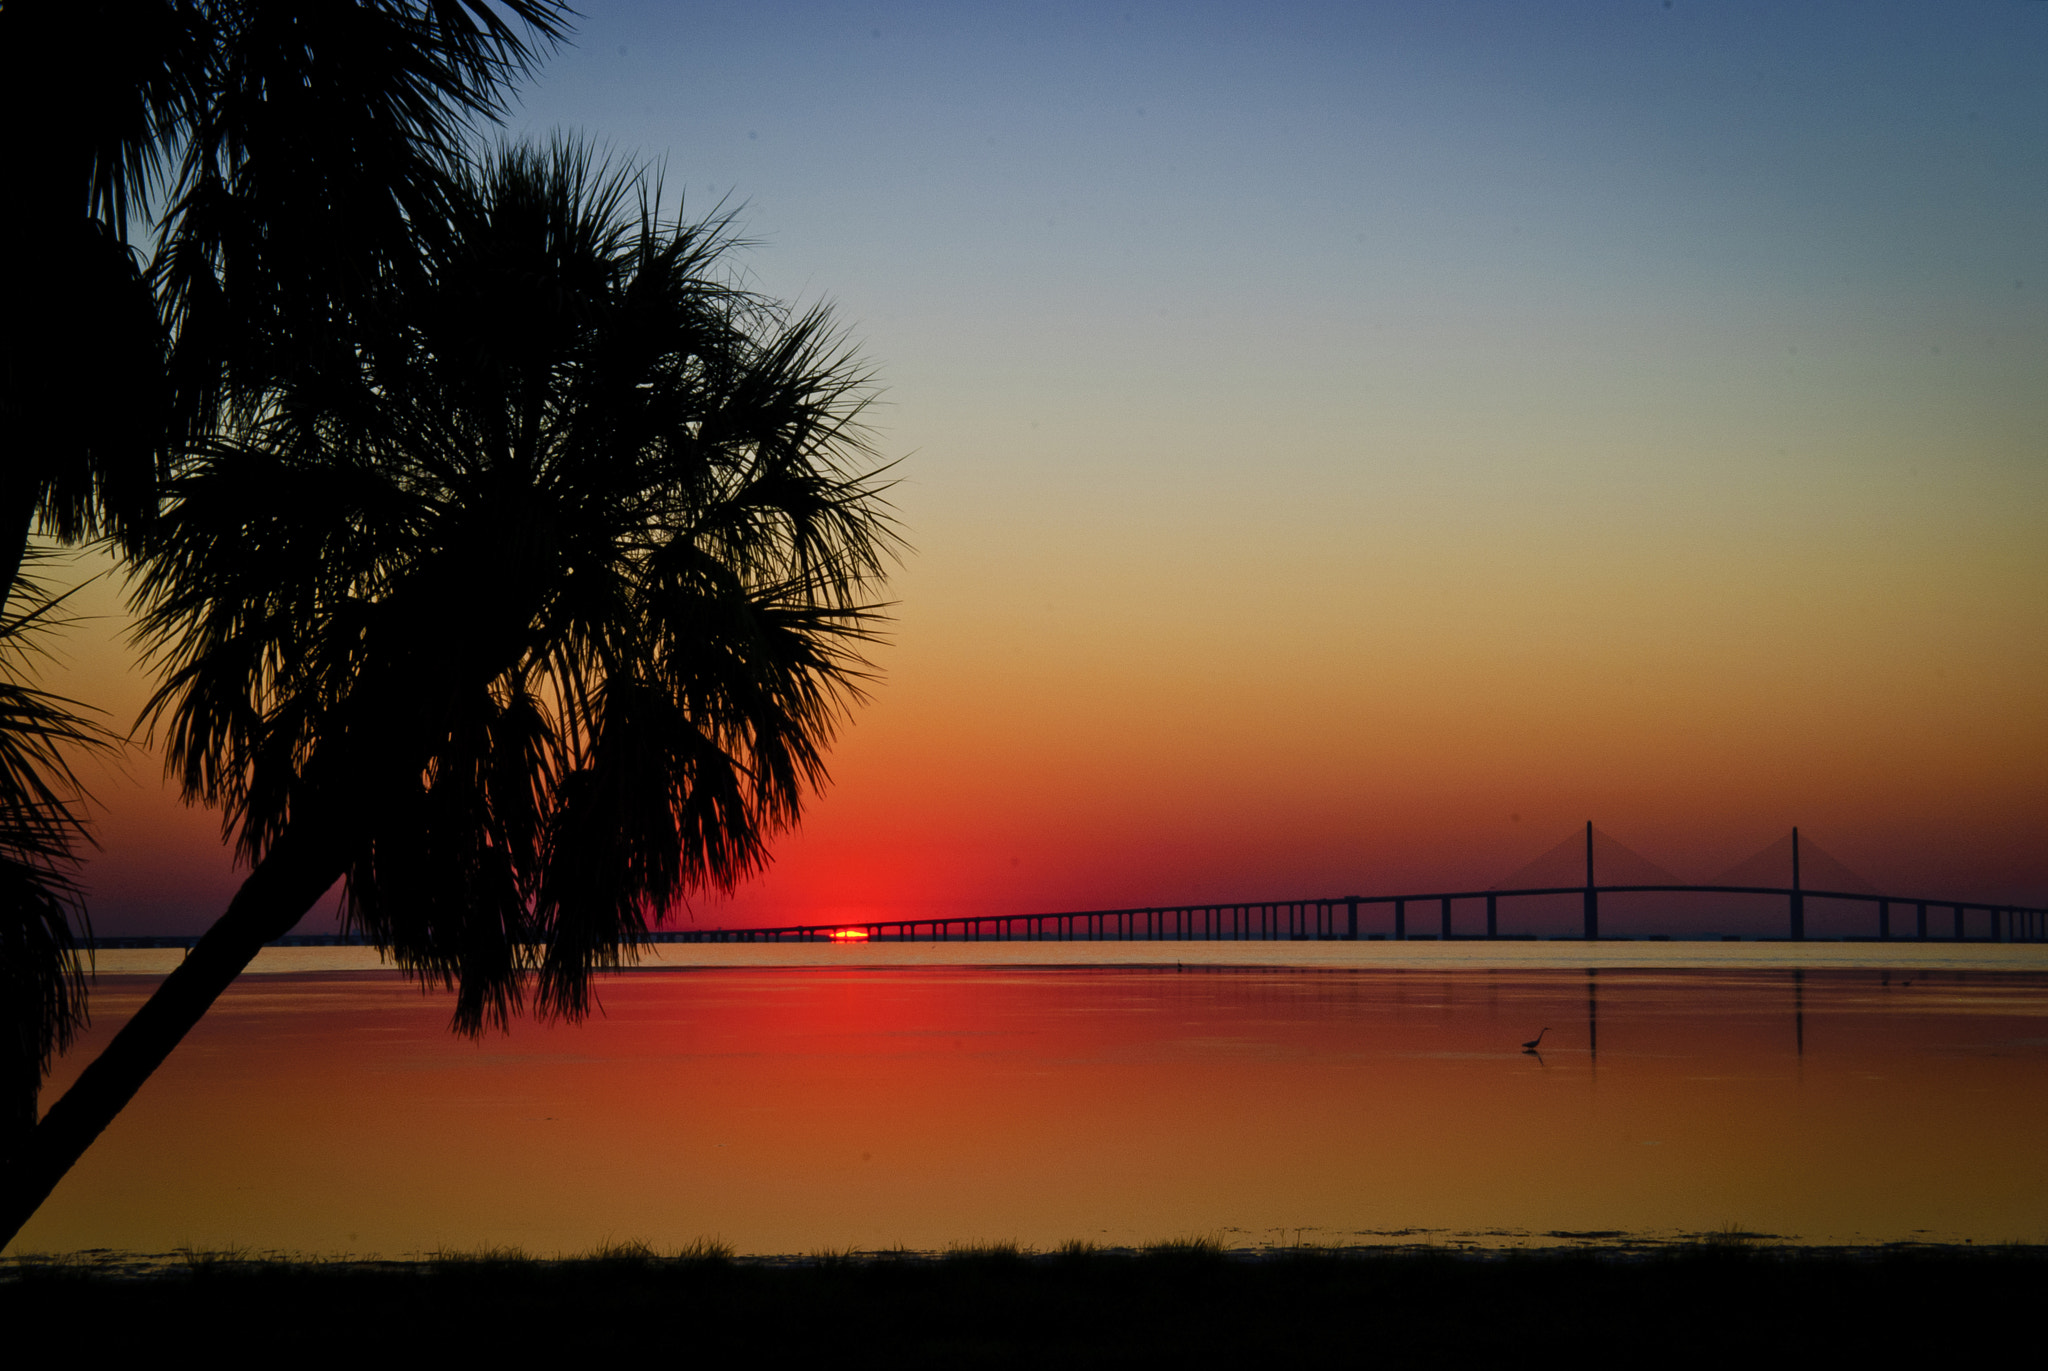 Photograph Sunrise over the Sunshine Skyway Bridge by Loomes Photography on 500px